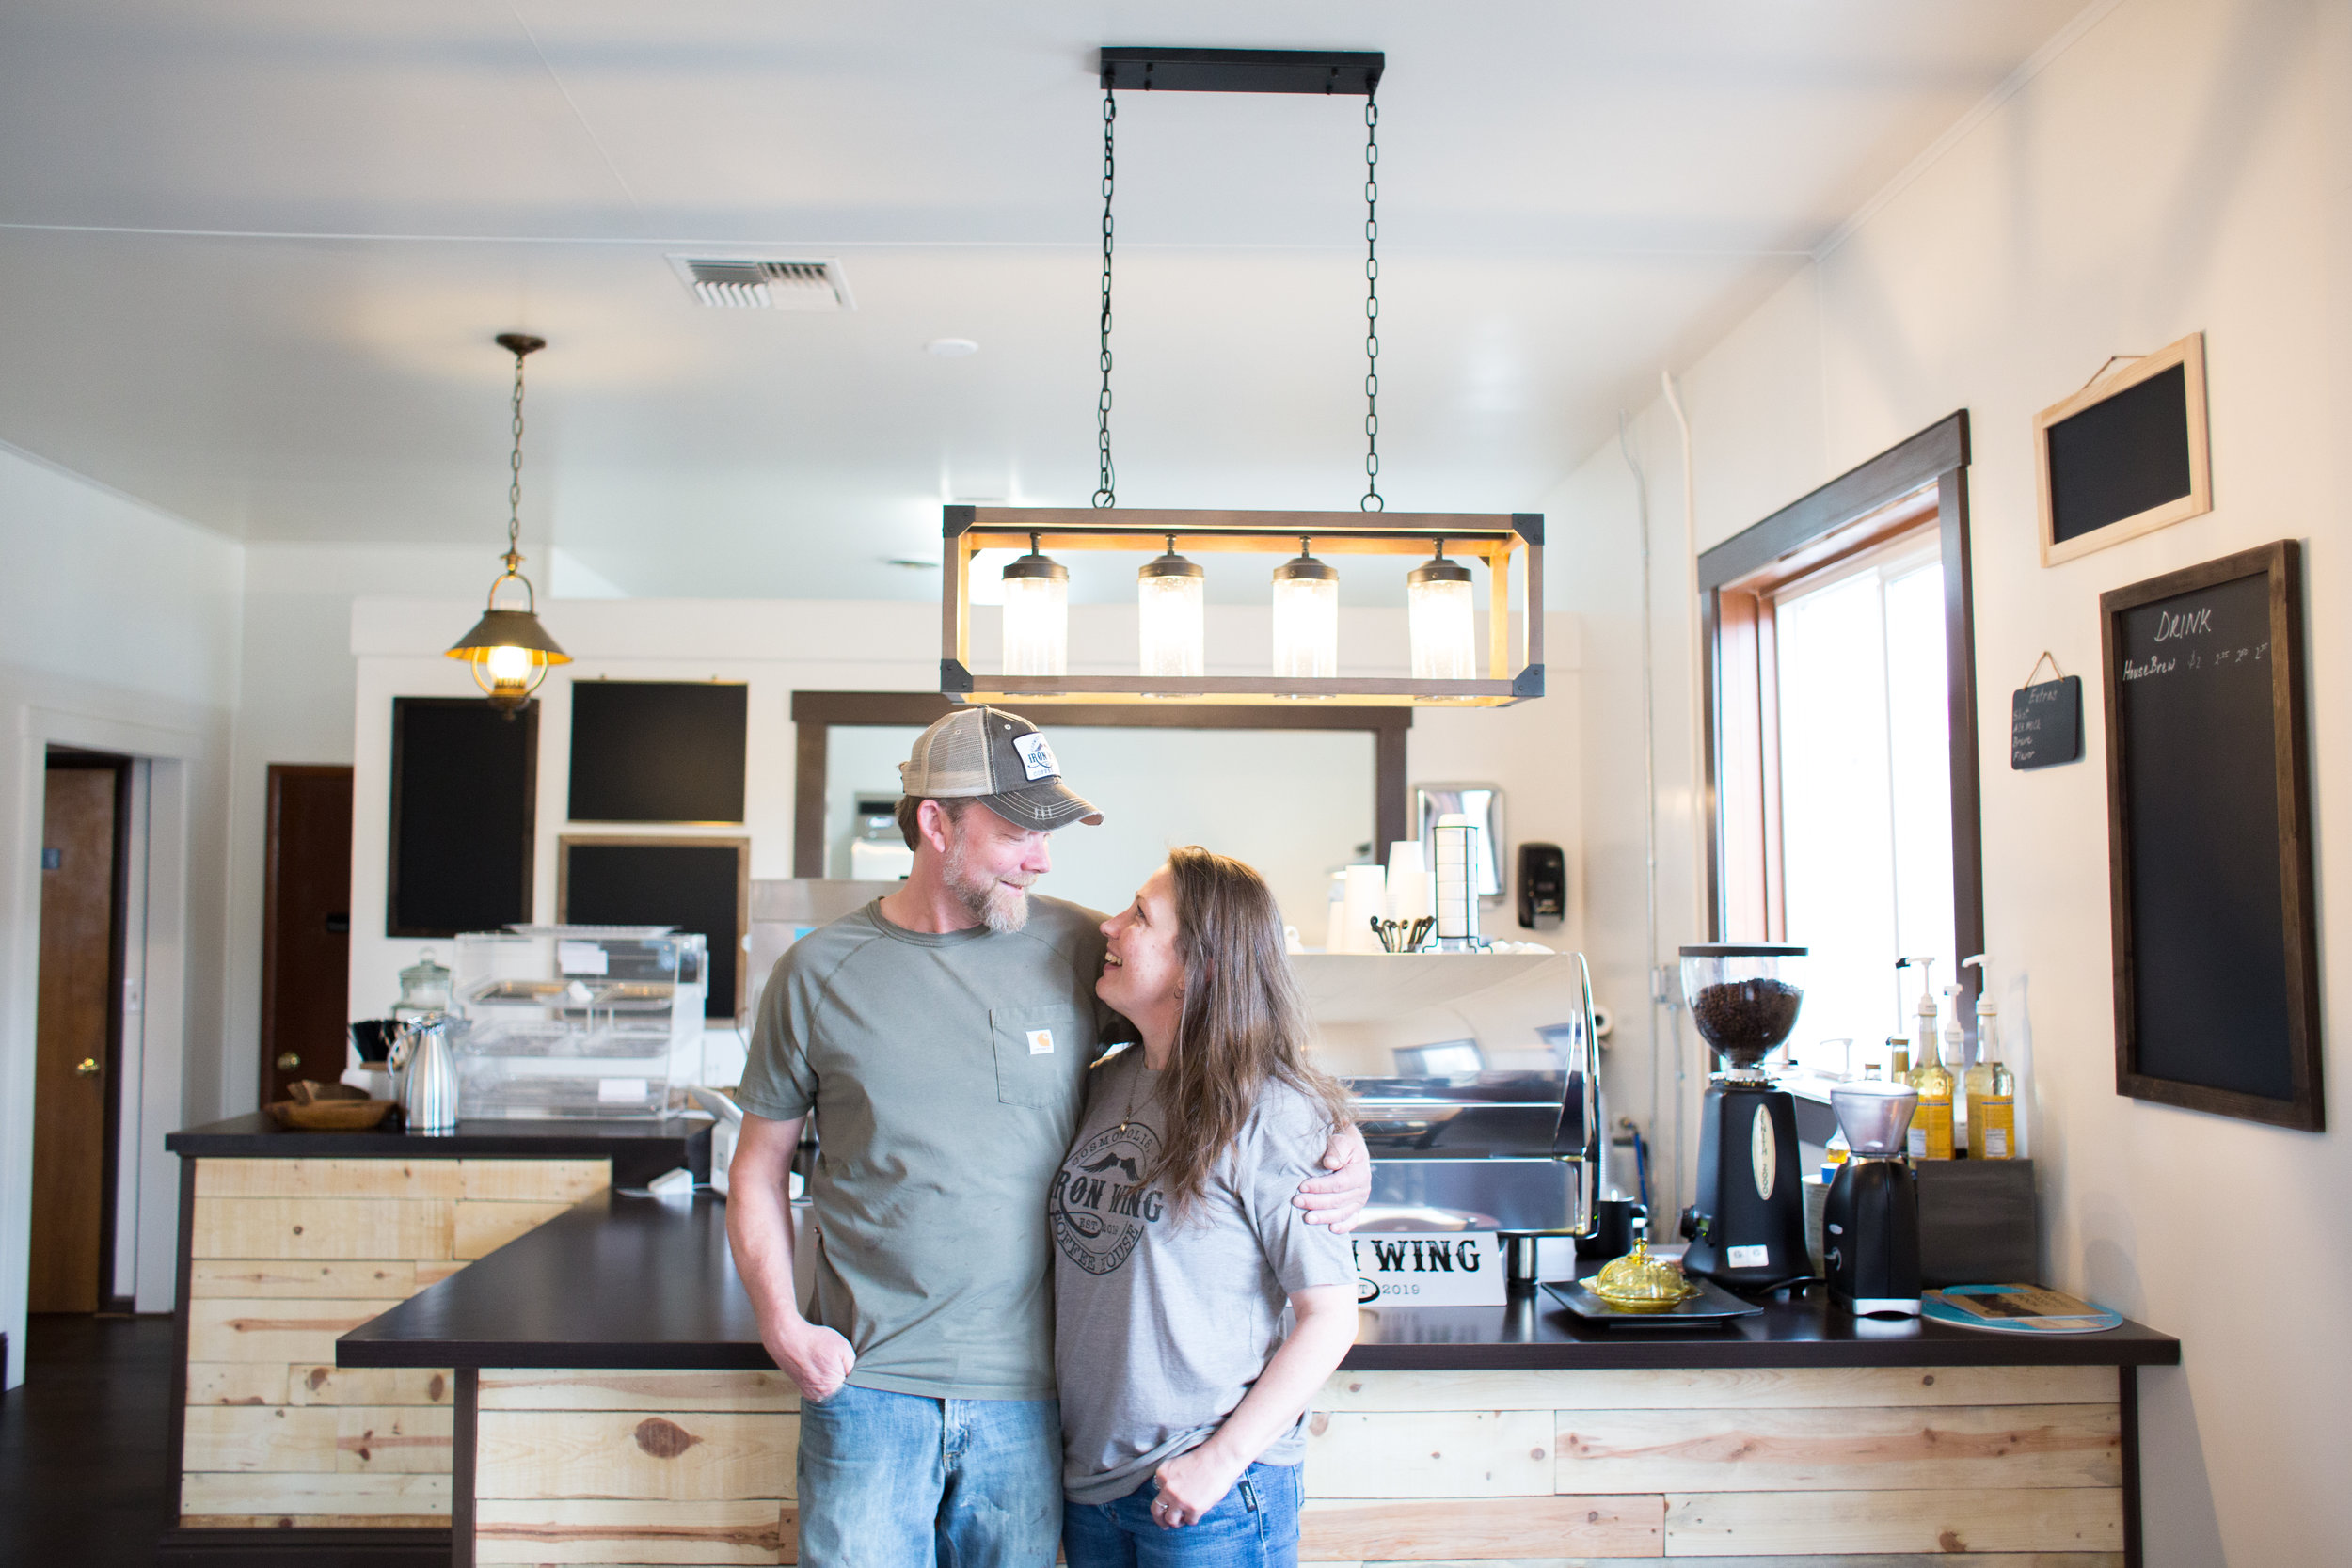 Acacia and Caleb enjoying their shop finally coming together!